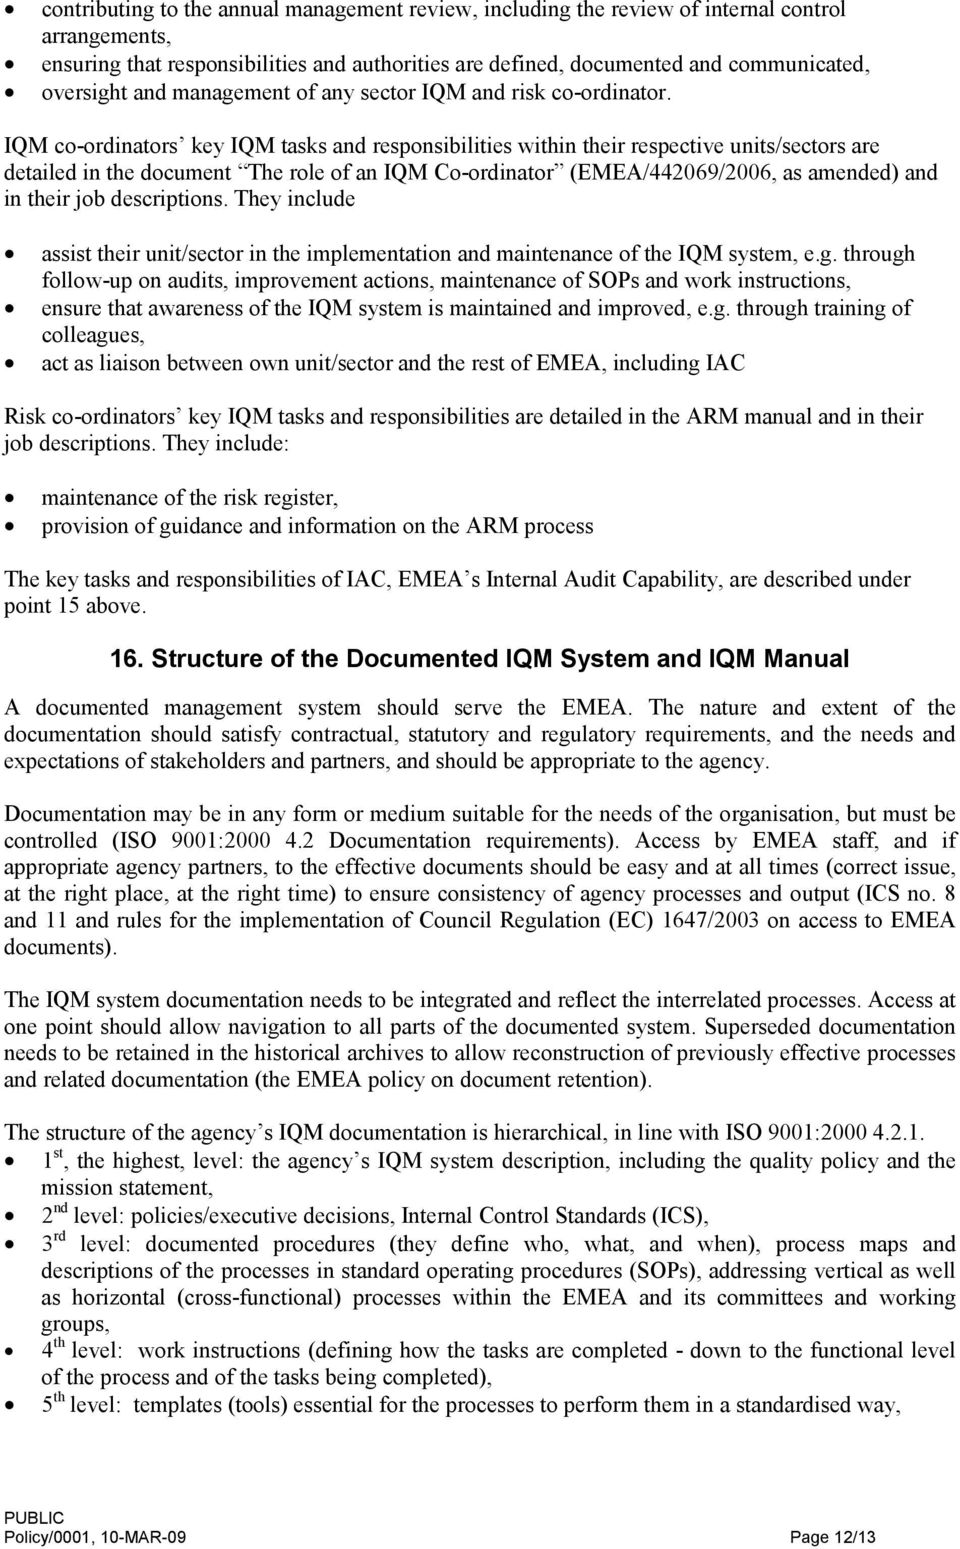 IQM co-ordinators key IQM tasks and responsibilities within their respective units/sectors are detailed in the document The role of an IQM Co-ordinator (EMEA/442069/2006, as amended) and in their job